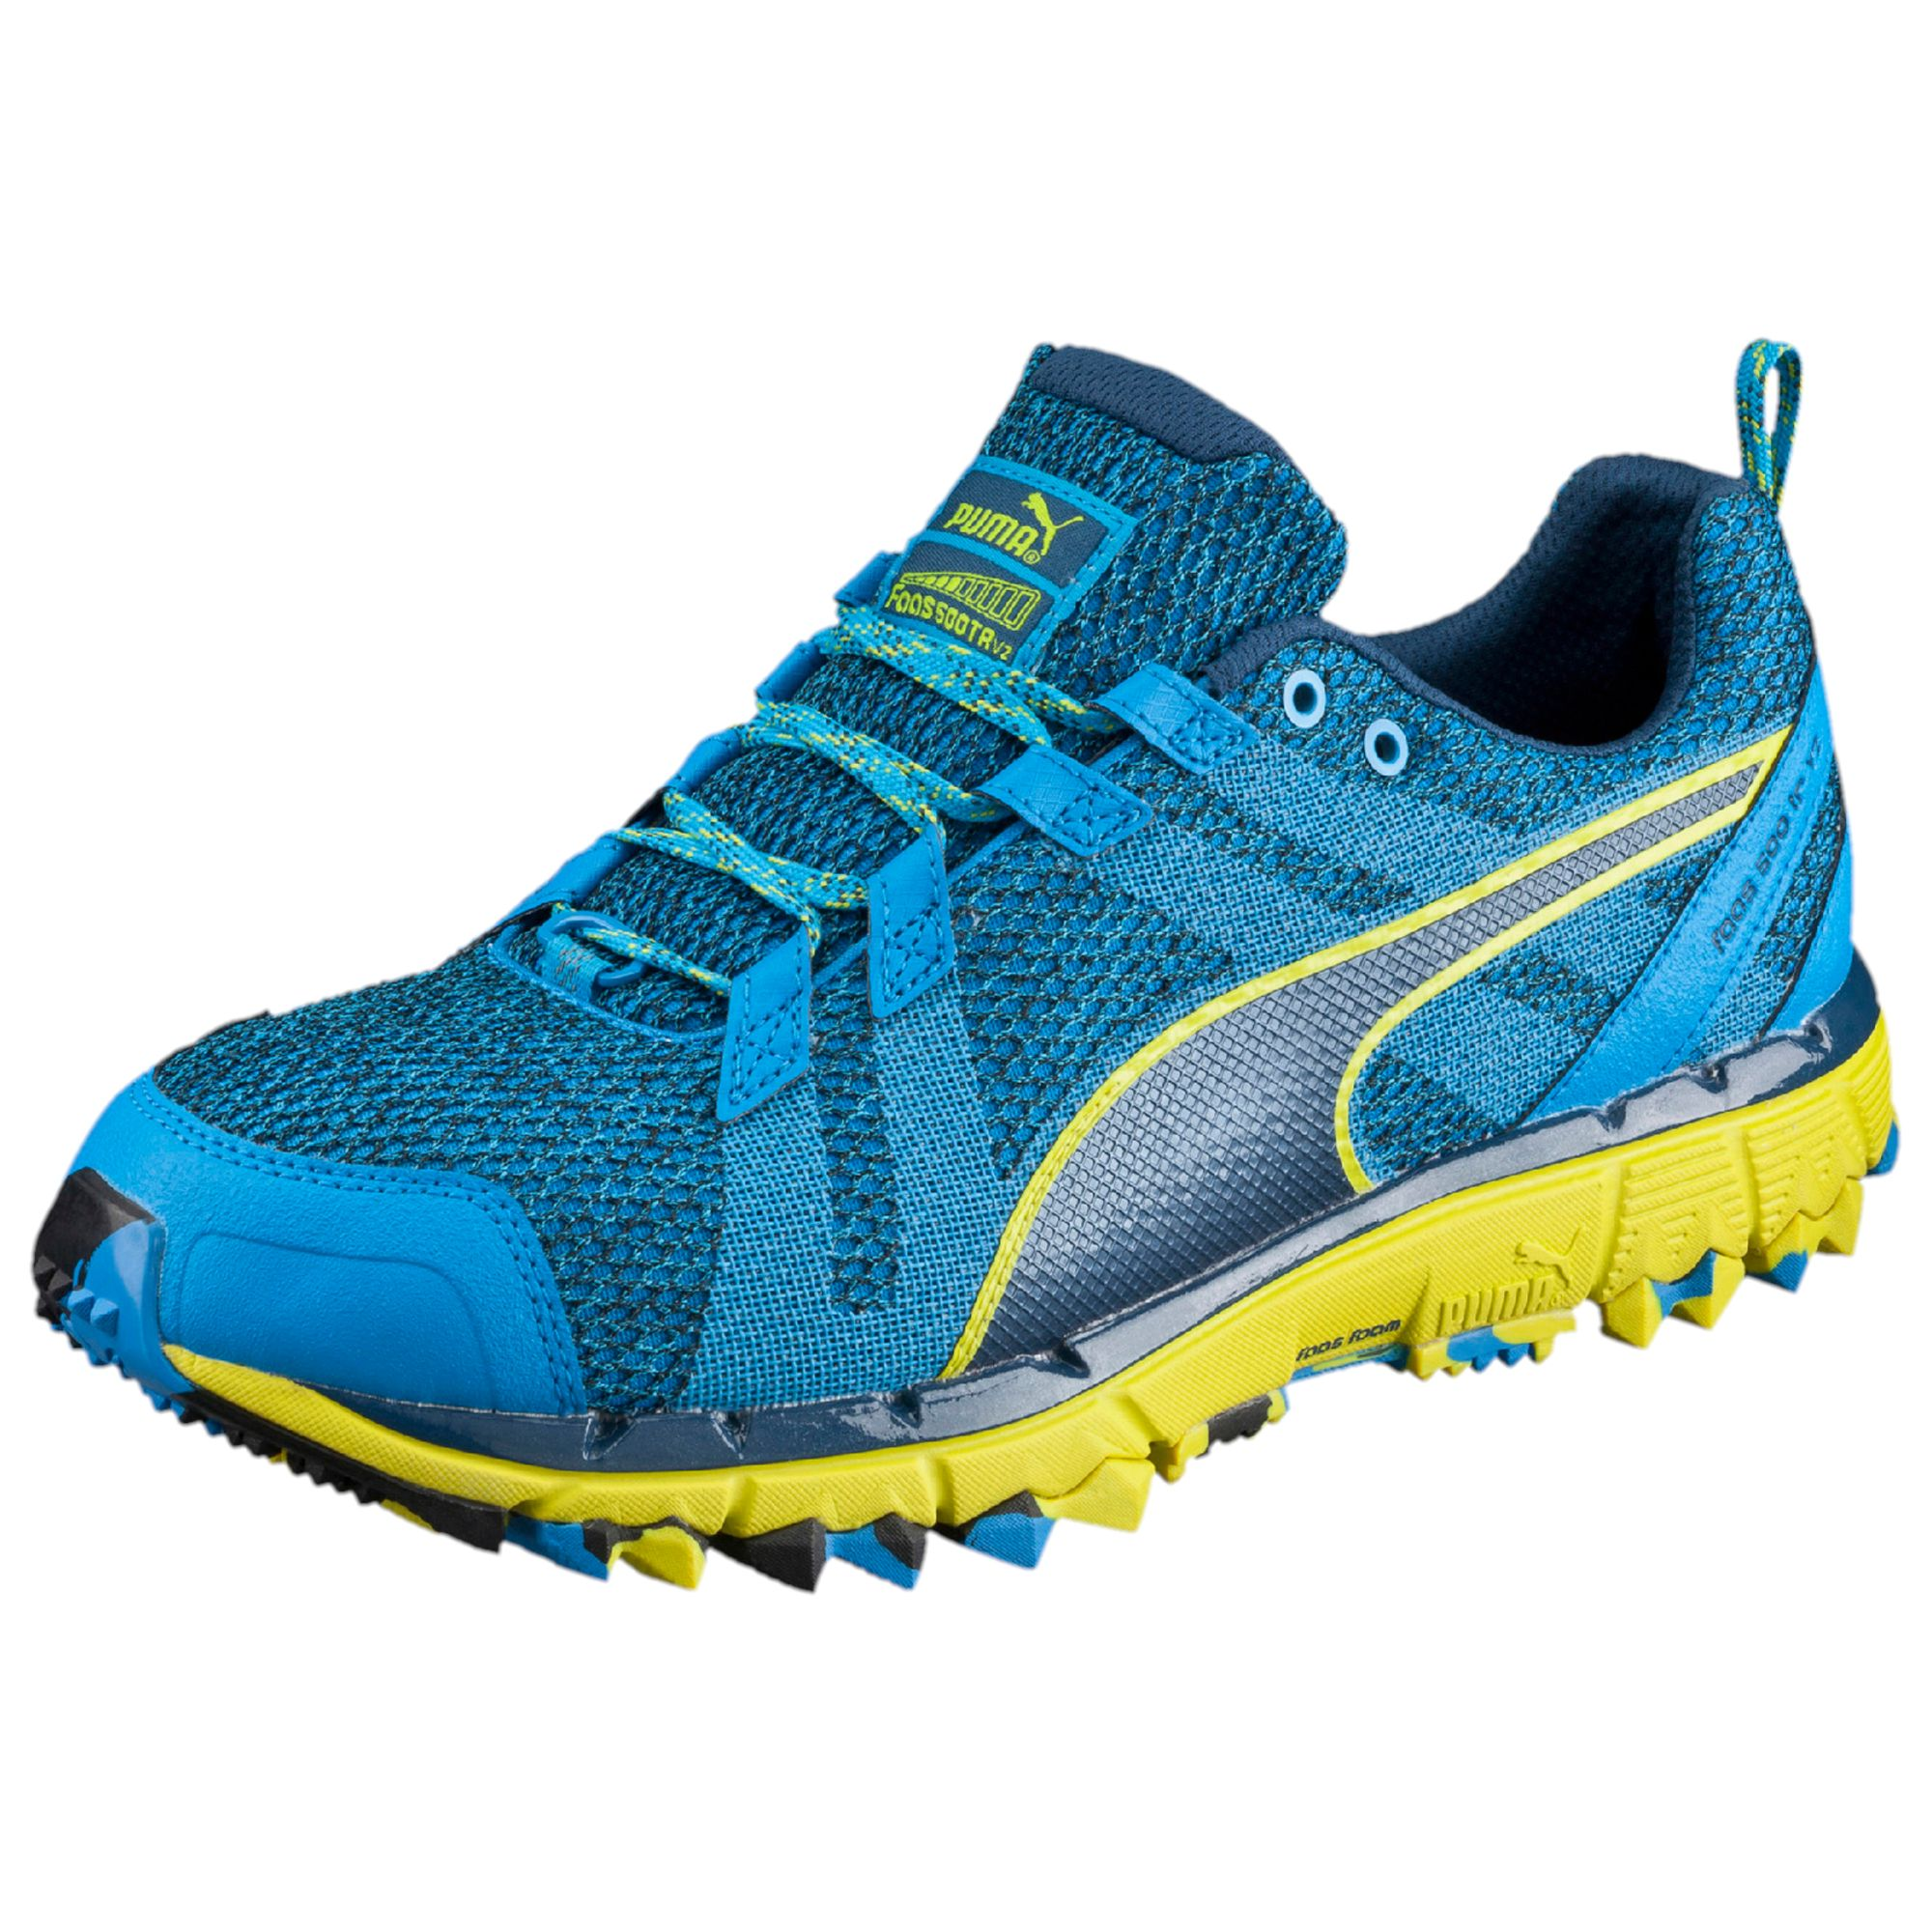 Carries New Men Puma Faas 500 v2 Running Shoes Blue - G9T98H5287